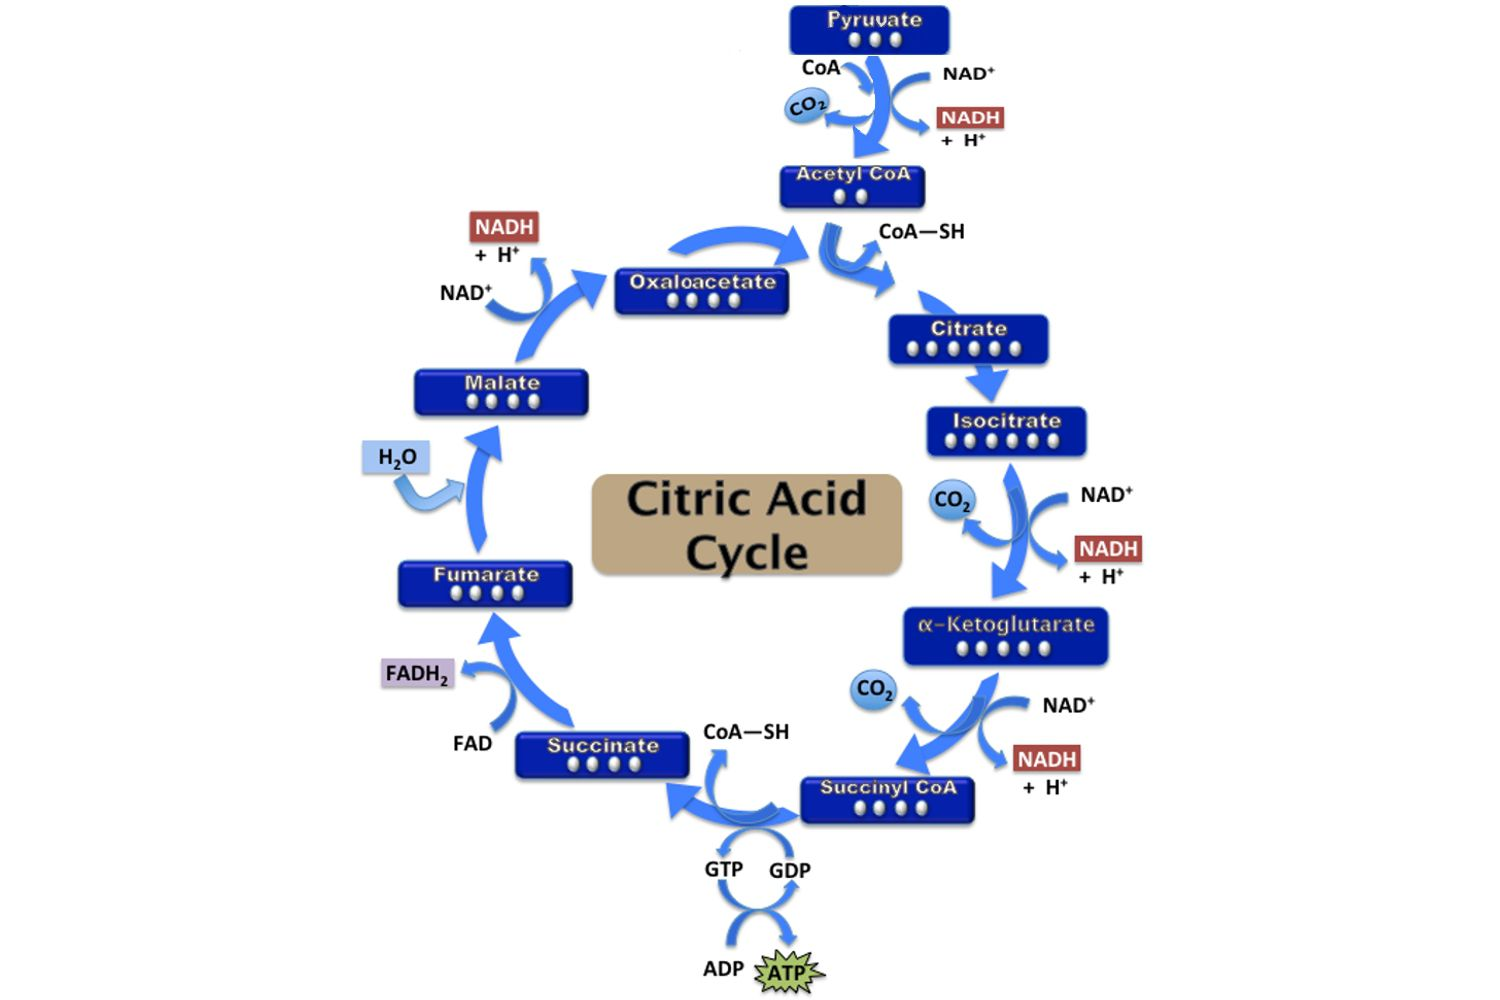 Citric acid cycle steps atp production pooptronica Image collections